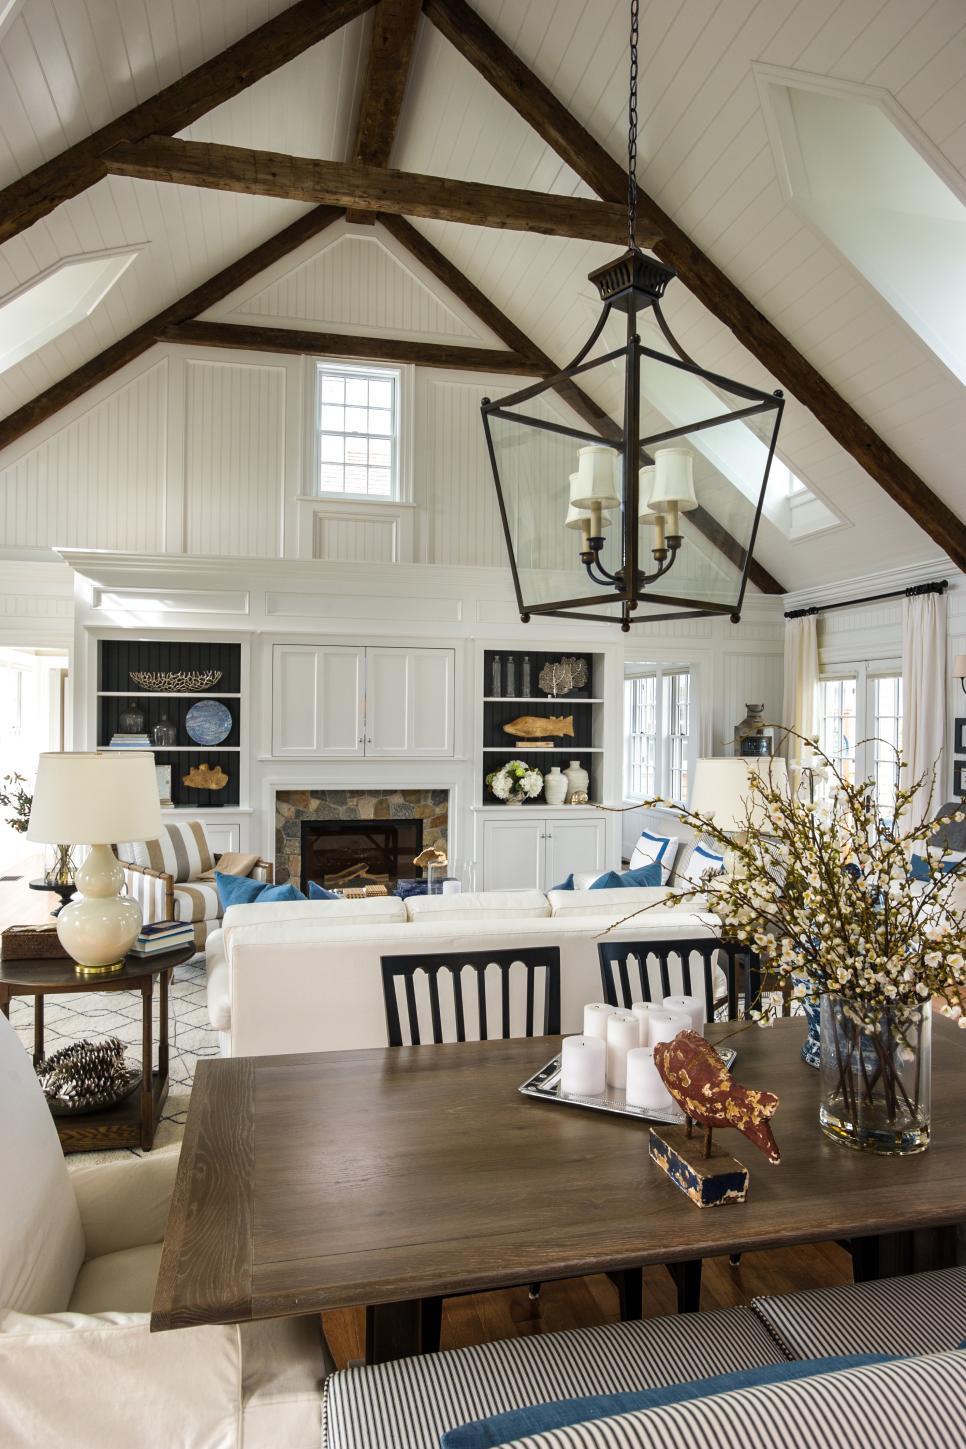 Hgtv dream home 2015 dining room hgtv dream home 2015 Dream designer homes